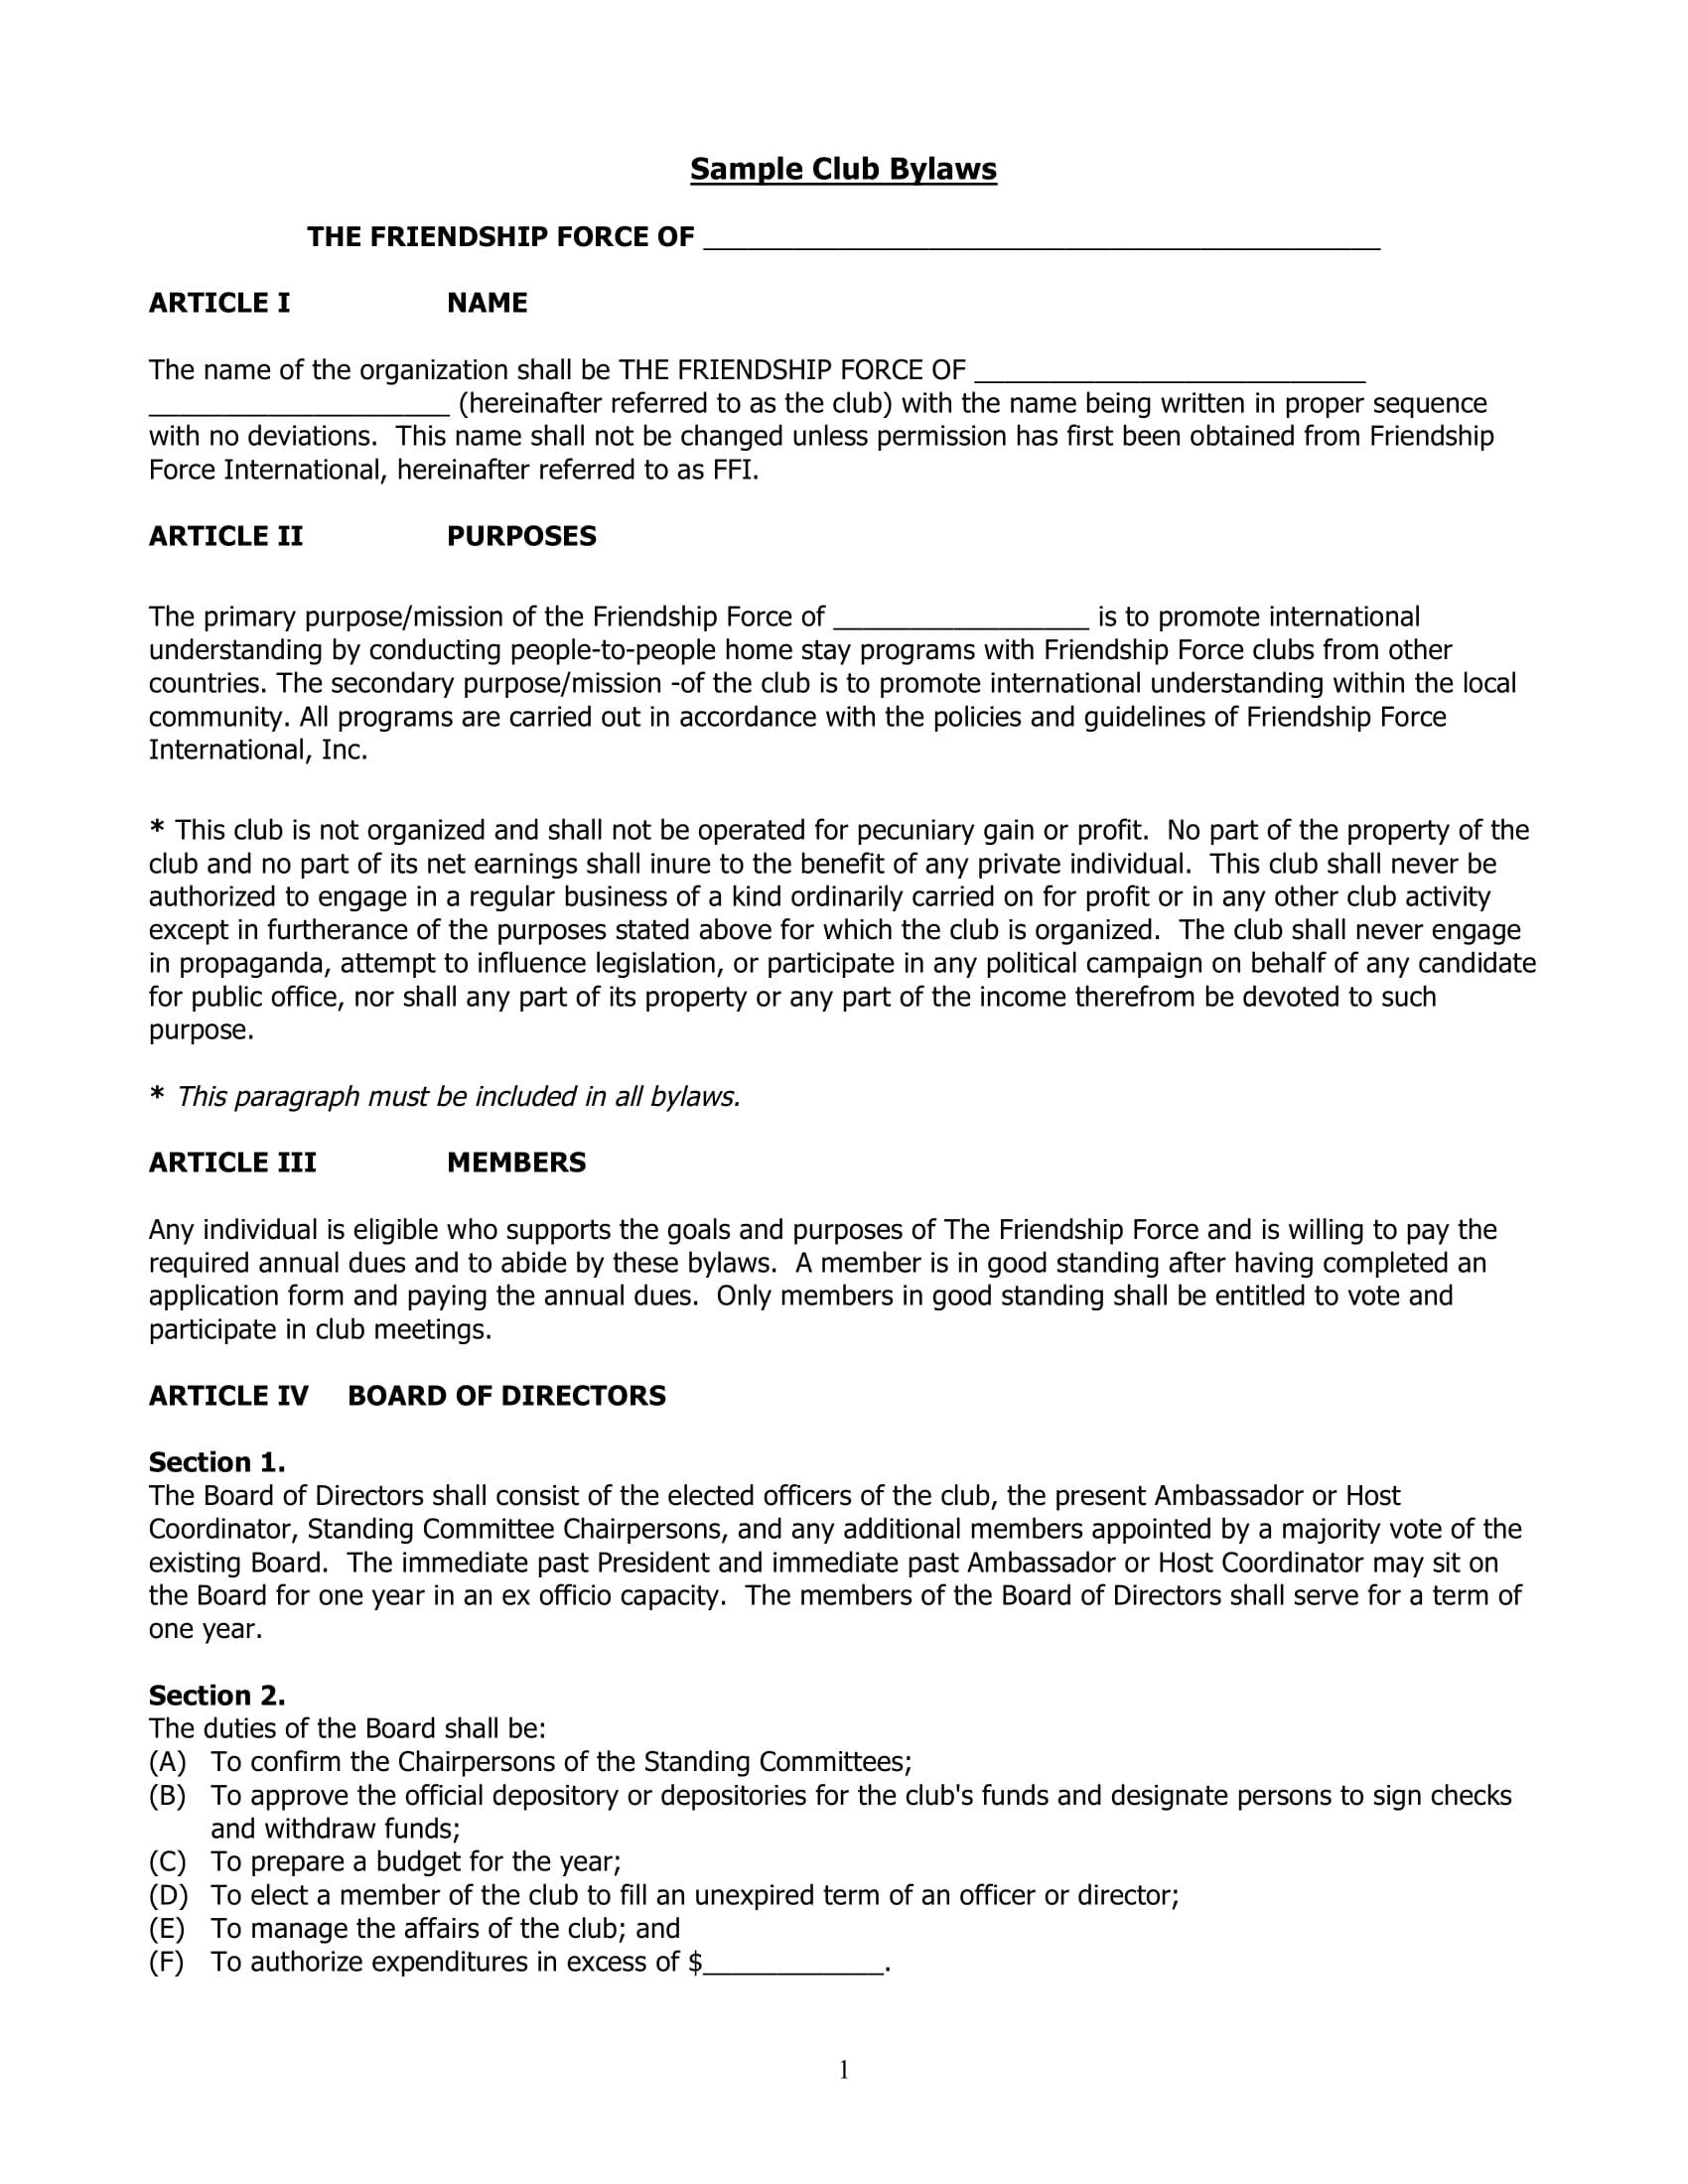 simple club bylaws sample form